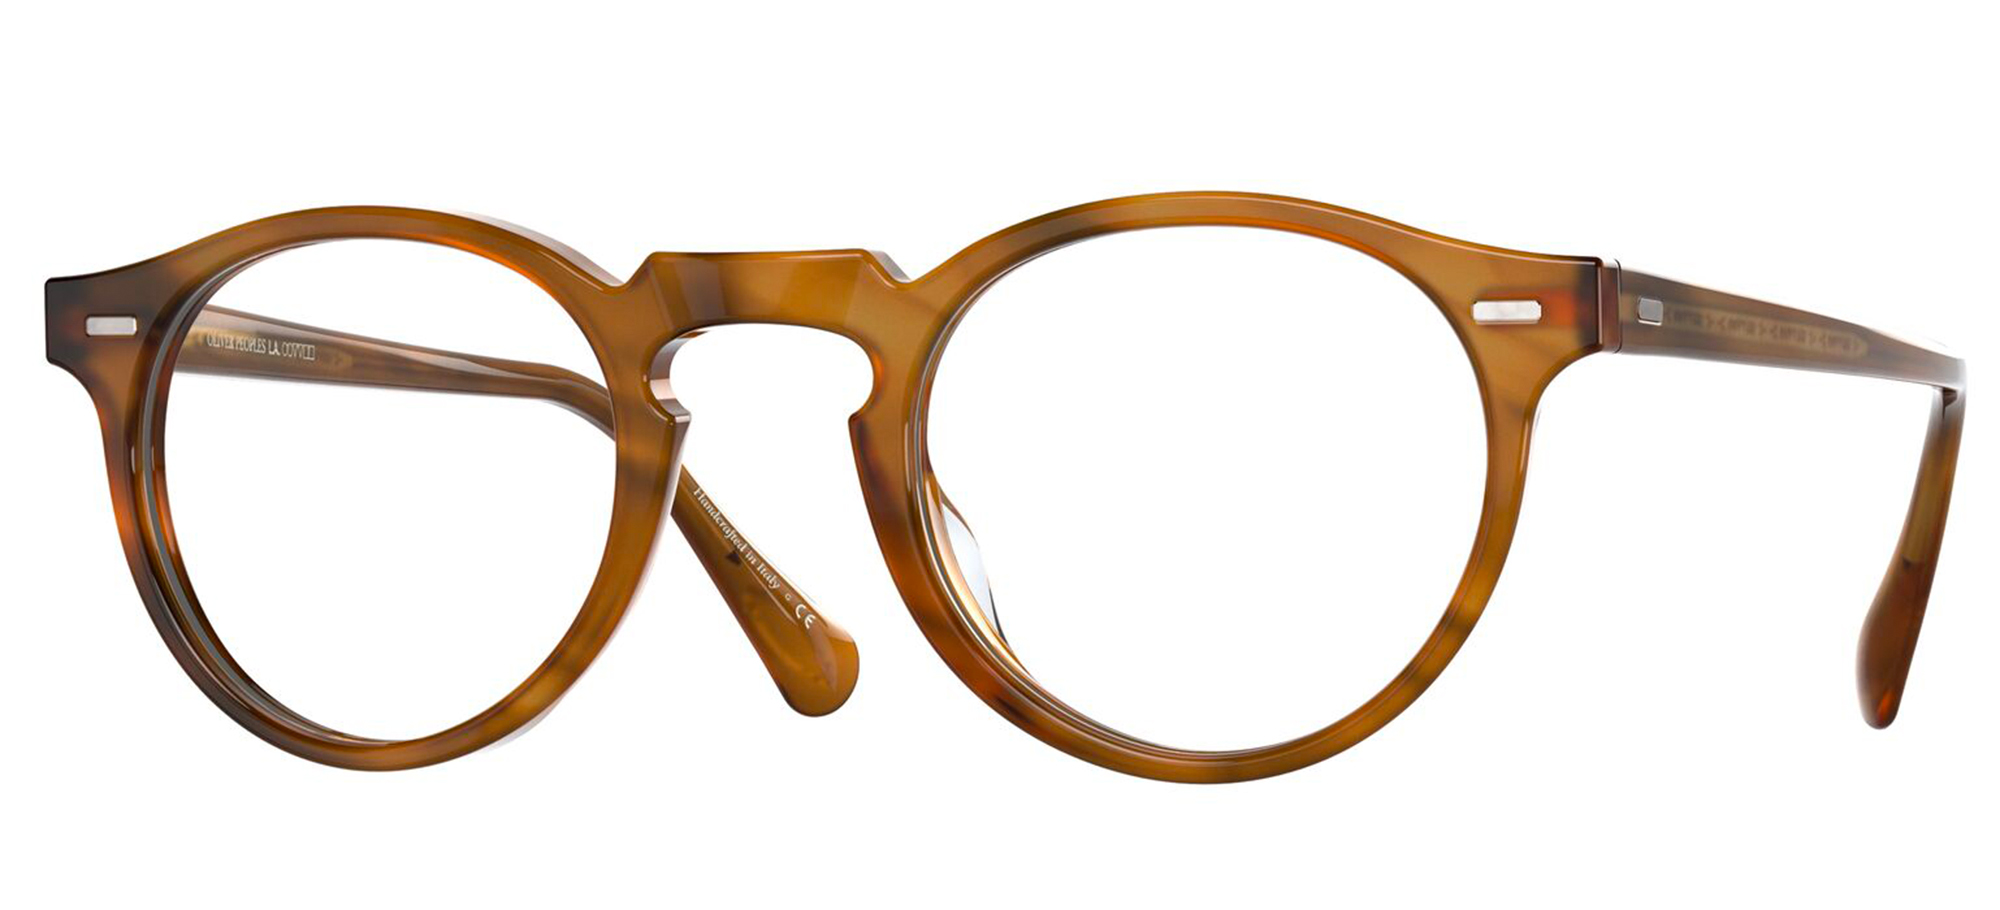 RAINTREE 1011 A Oliver Peoples GREGORY PECK OV 5186 45//23//150 acetate men Round